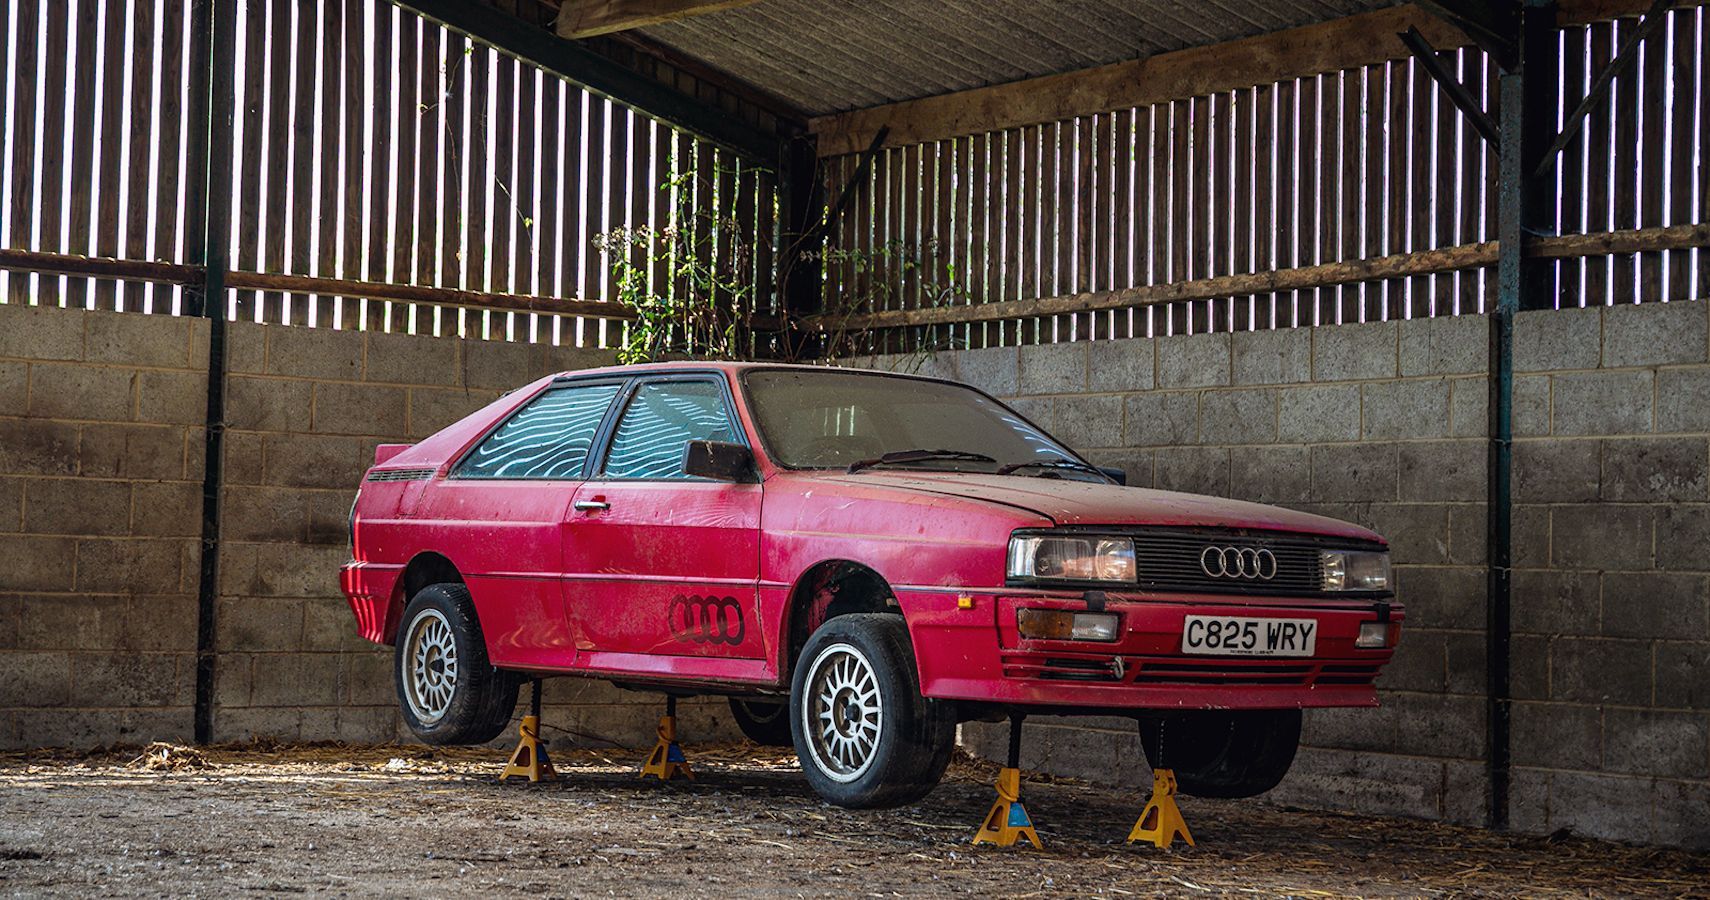 1985 Audi Quattro 10v Sells For $22K After Spending 25 Years Stuffed In A Barn